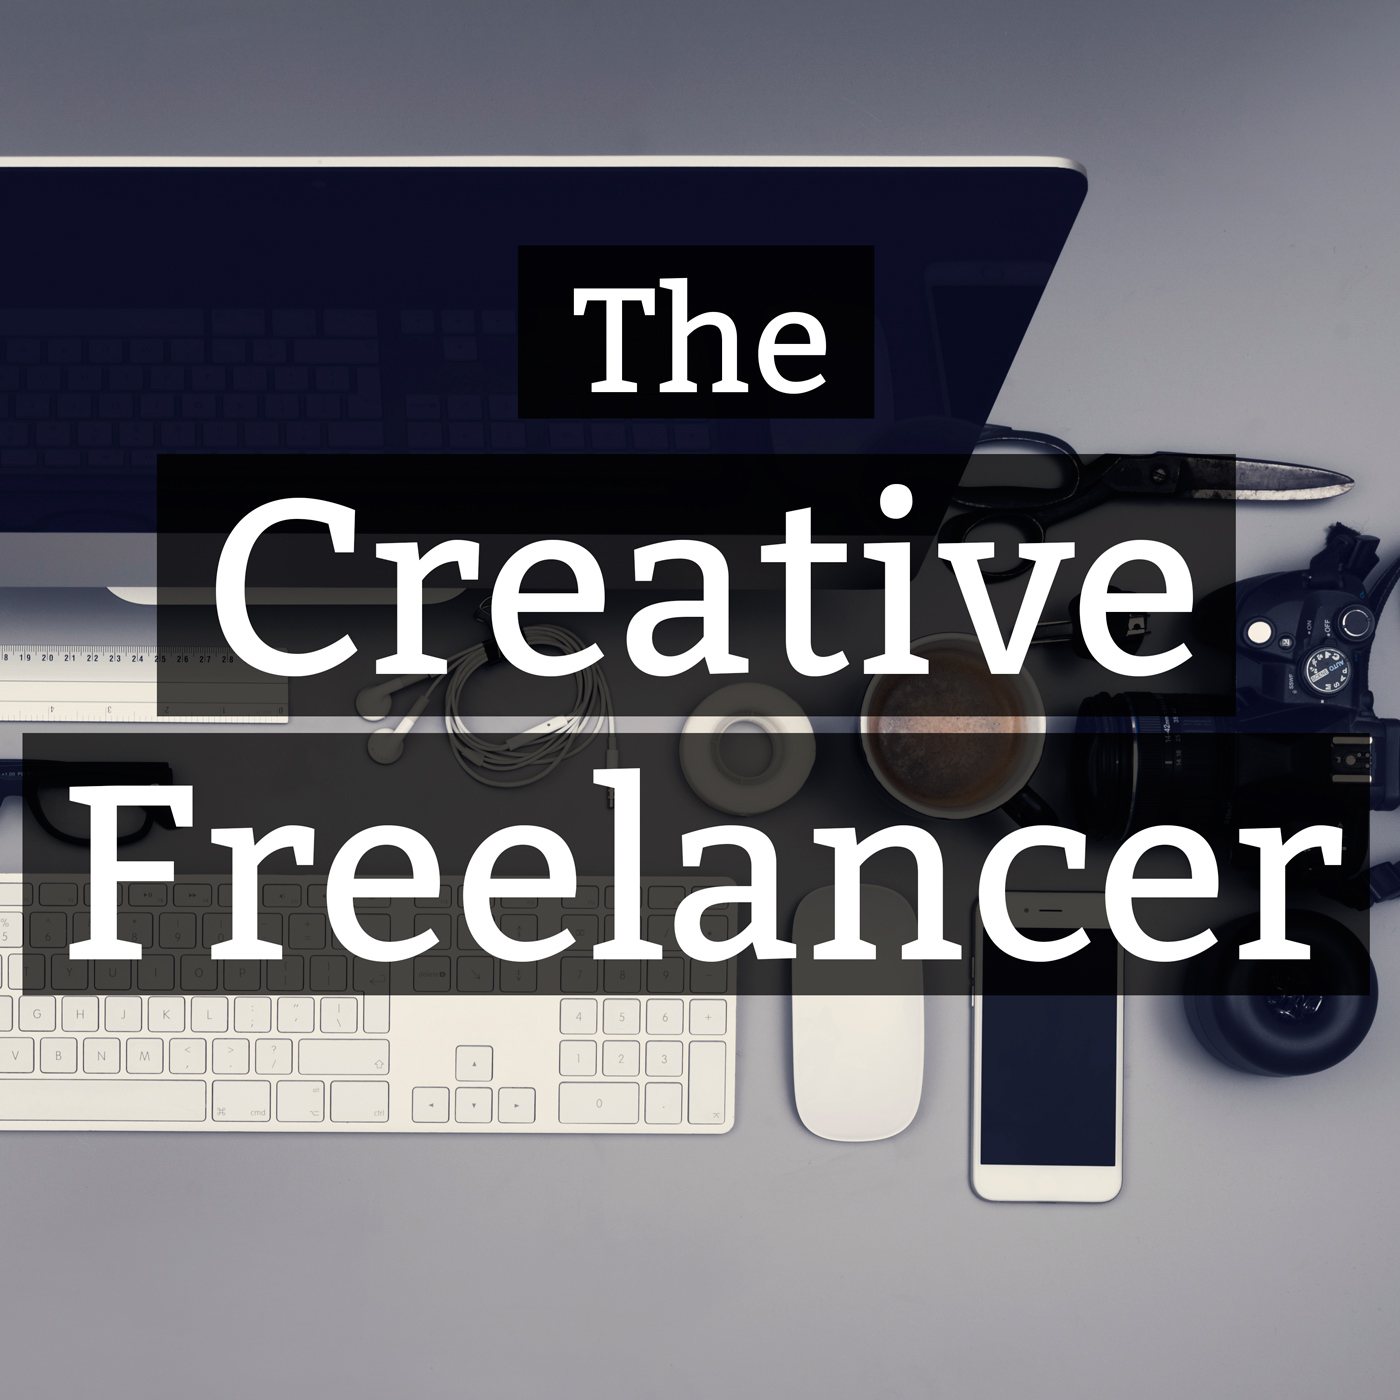 The Creative Freelancer